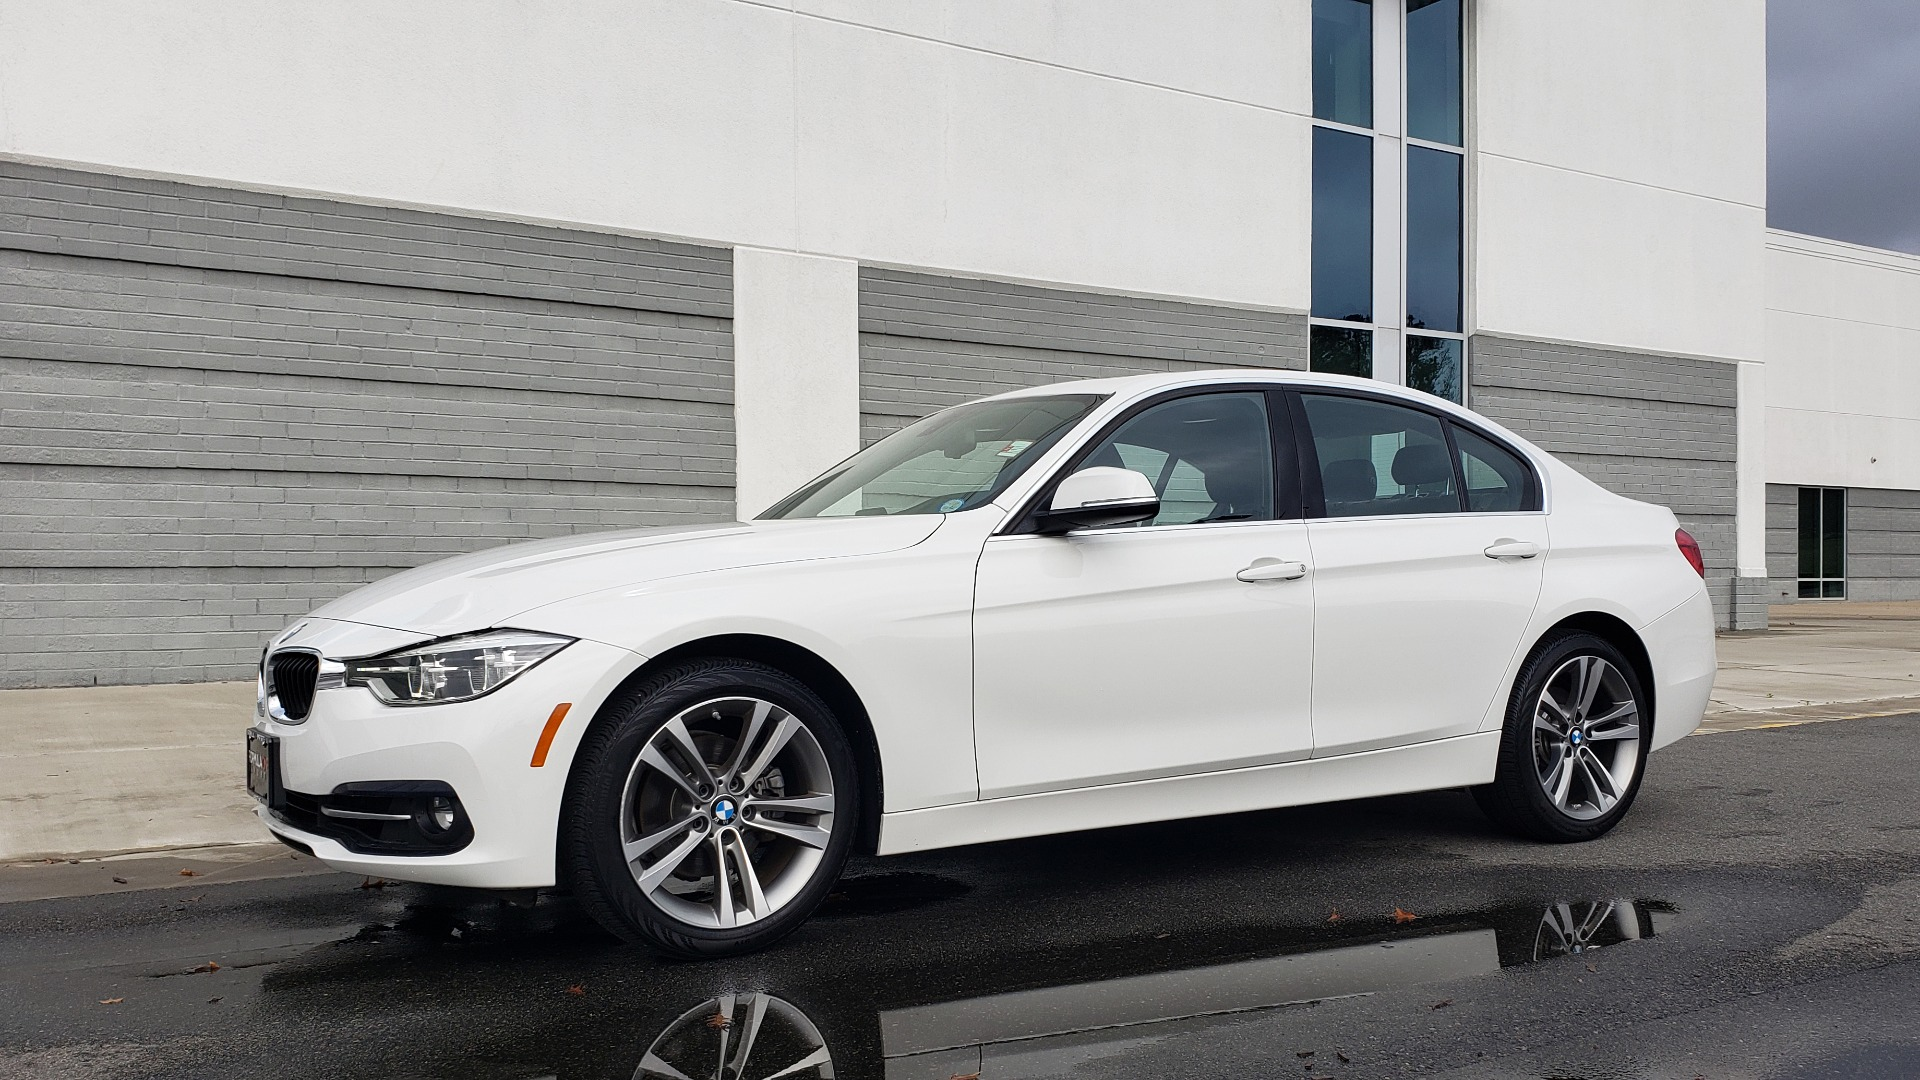 Used 2018 BMW 3 SERIES 330I XDRIVE / CONV PKG / SUNROOF / HTD STS / REARVIEW for sale $24,795 at Formula Imports in Charlotte NC 28227 7